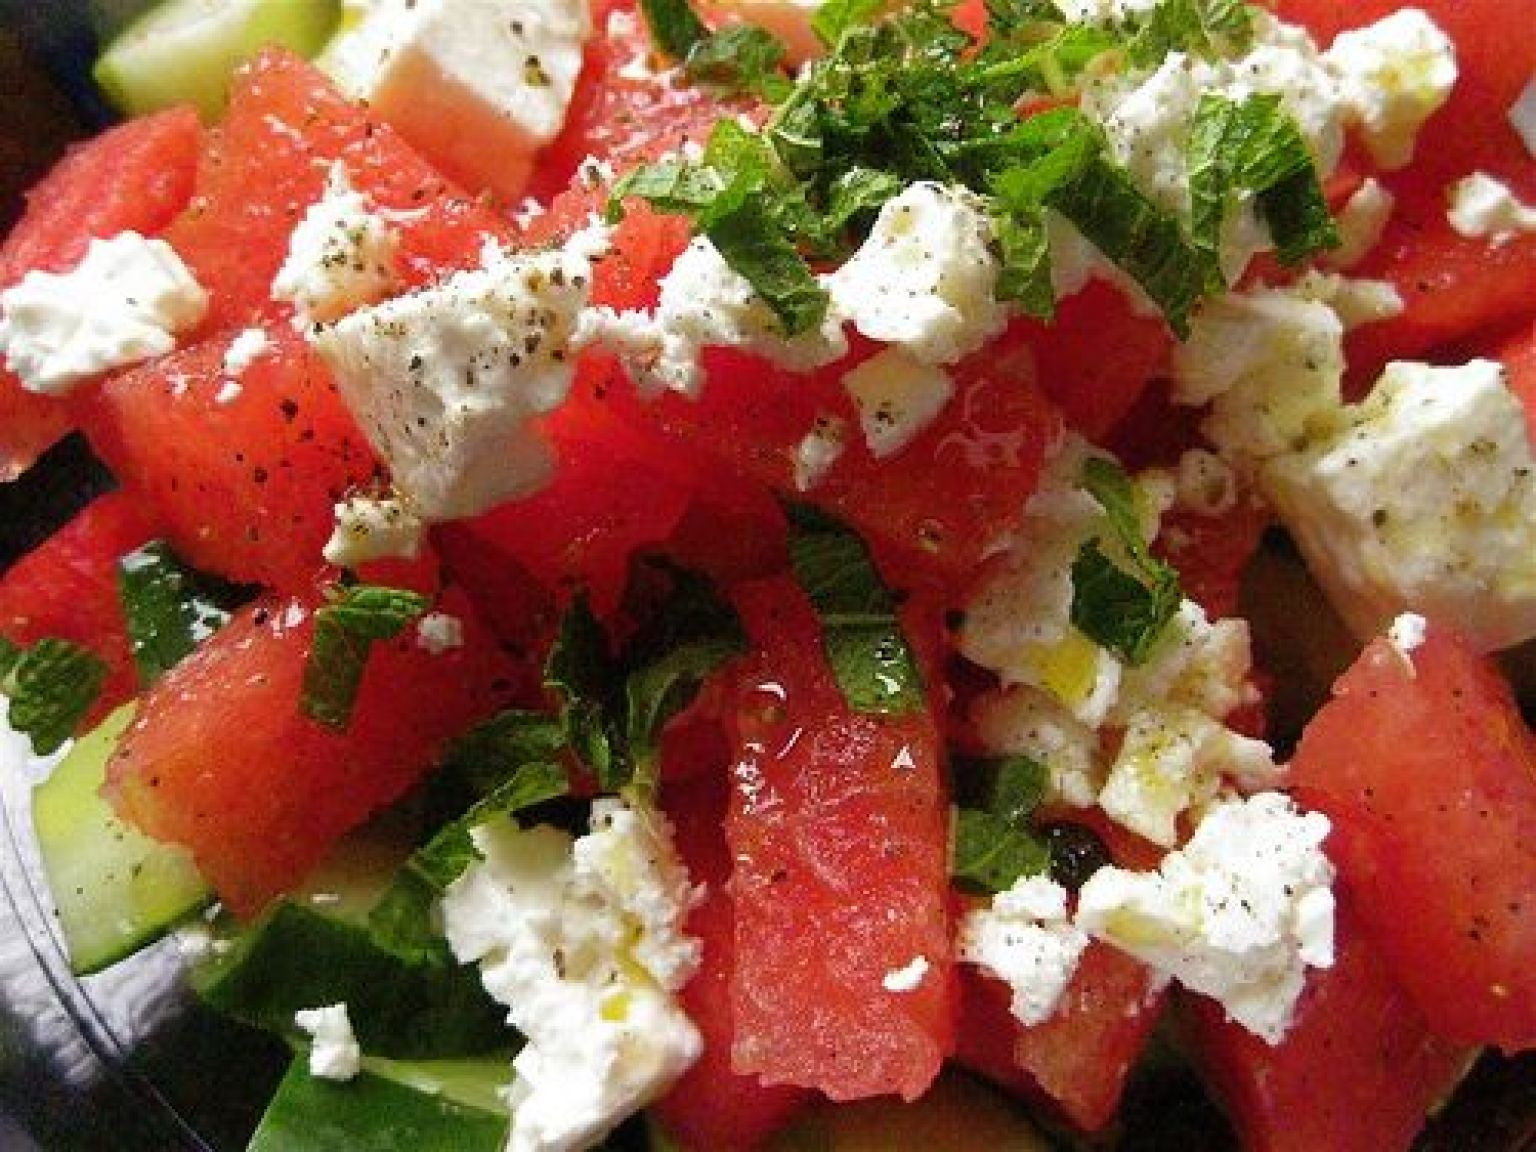 Watermelon Salad Recipe With Cucumbers, Mint and Feta Cheese | Organic ...